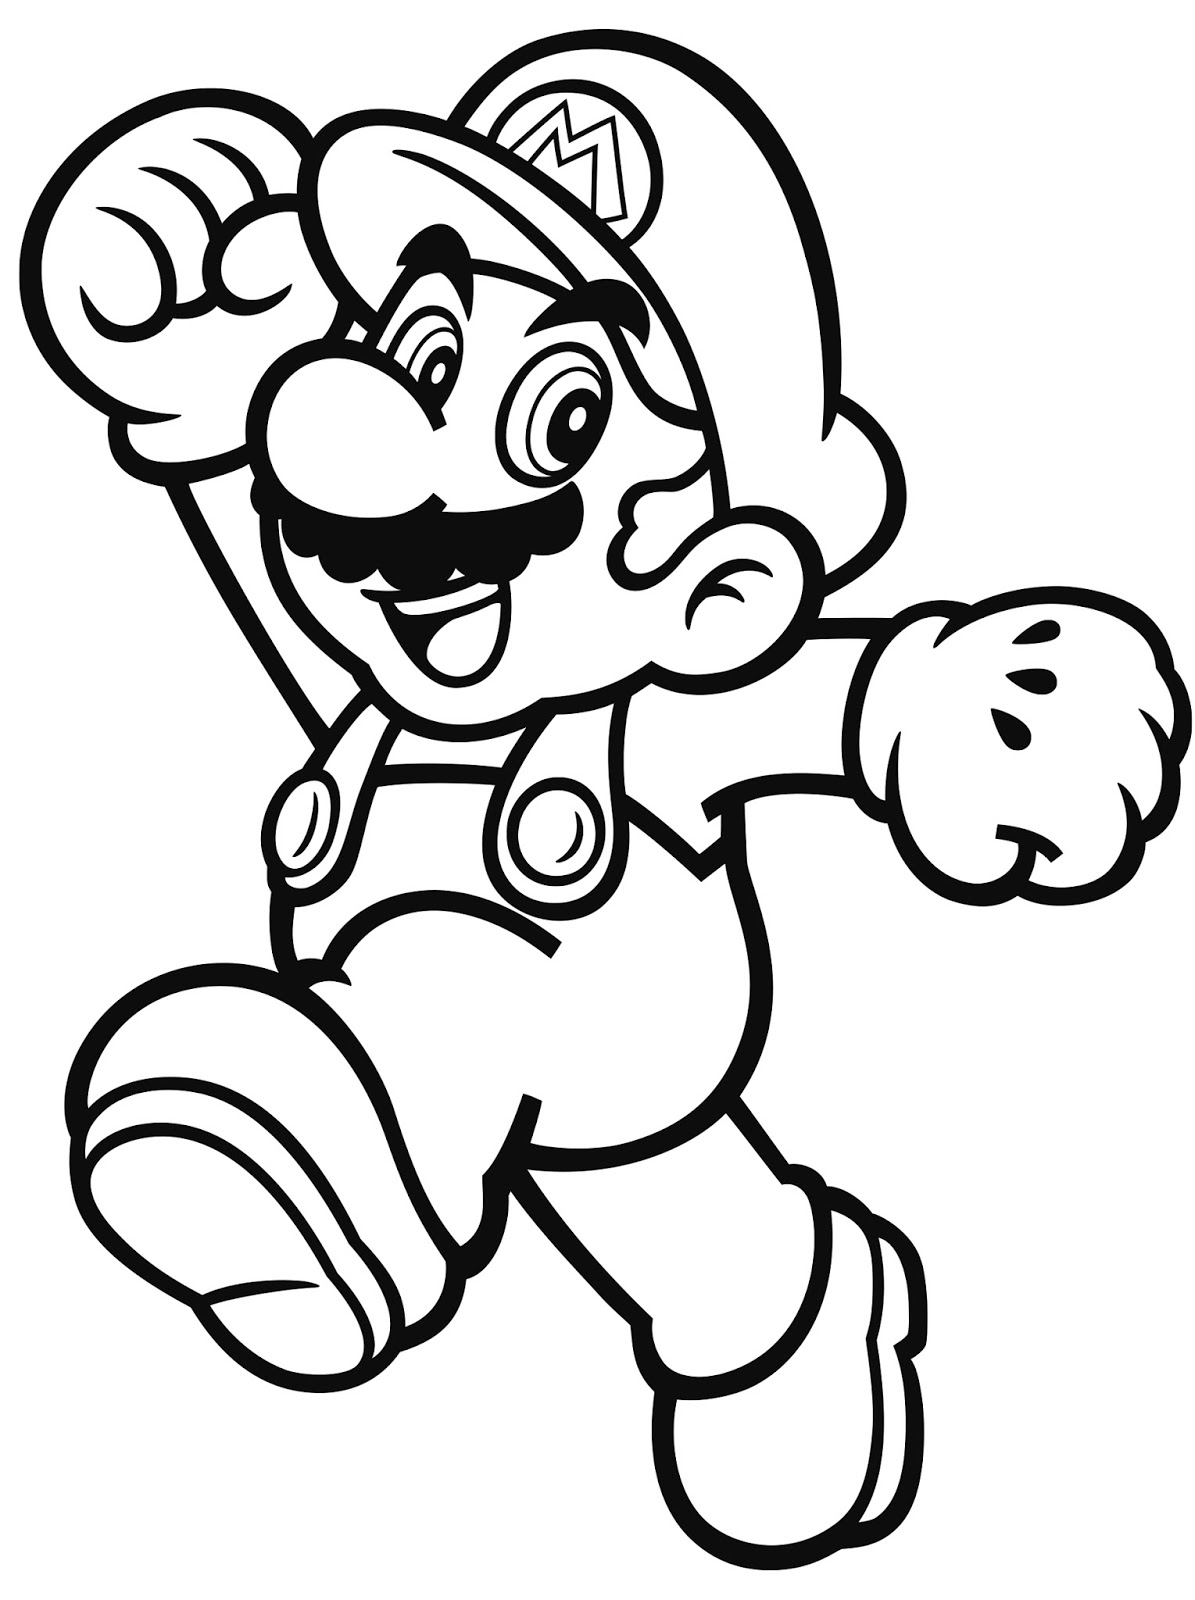 mario characters coloring pages - photo#2